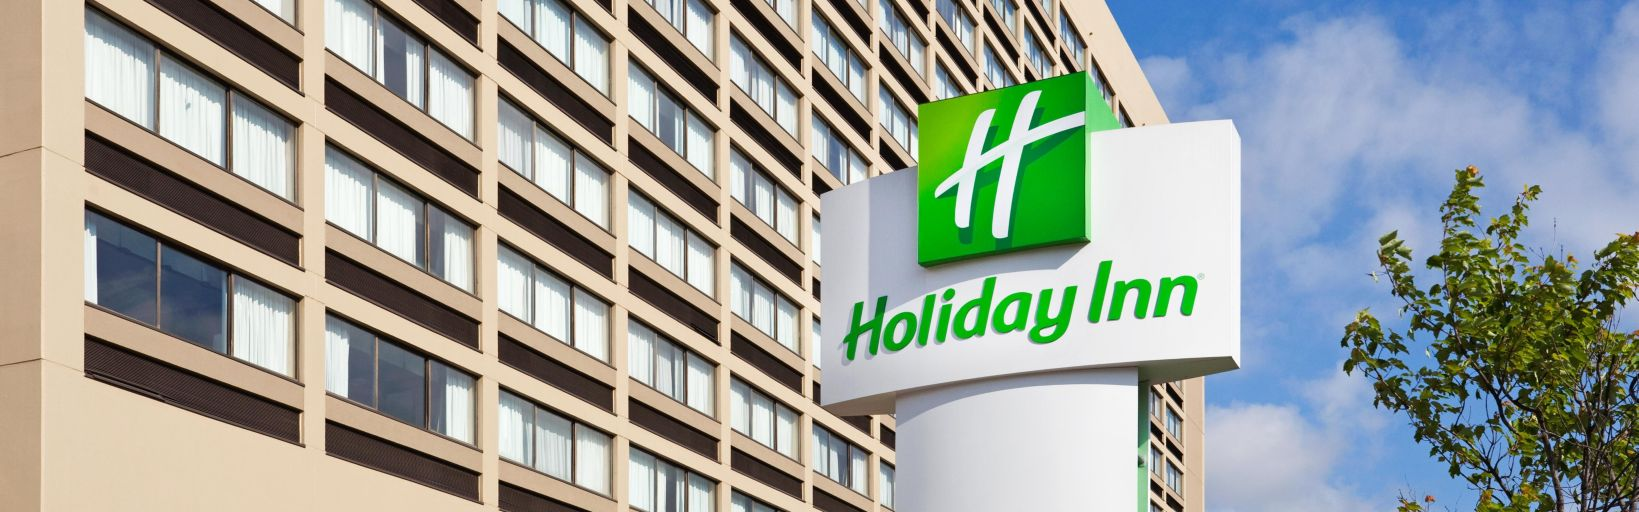 welcome to holiday inn downtown worlds fair park